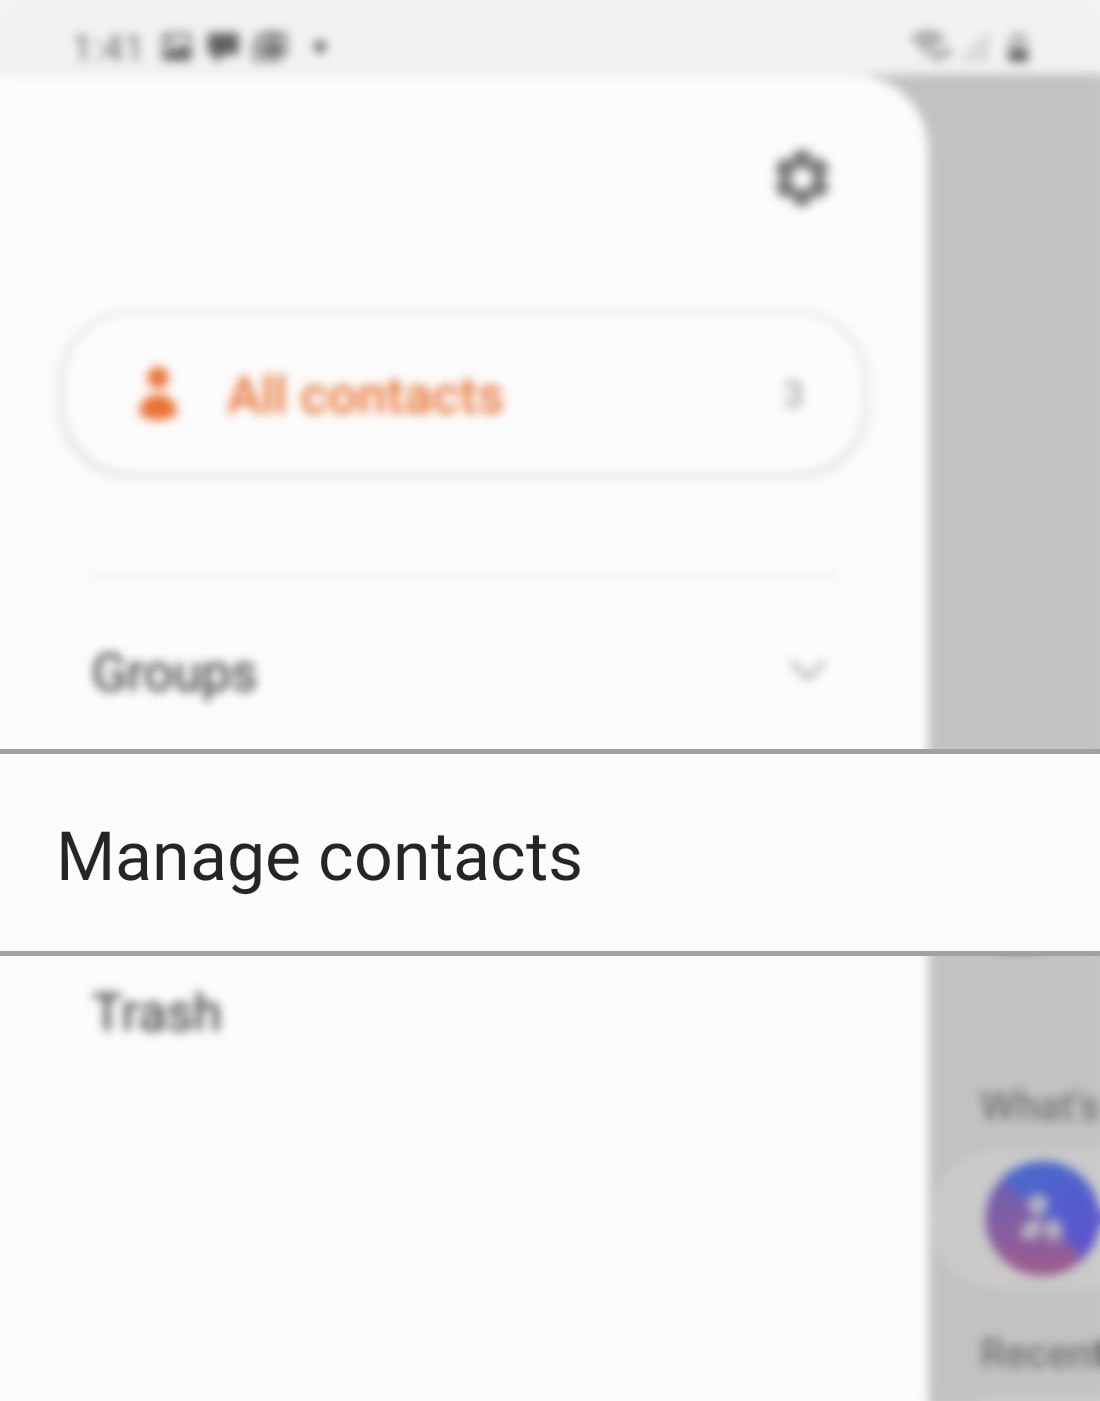 sync account contacts on galaxy s20 - manage contacts